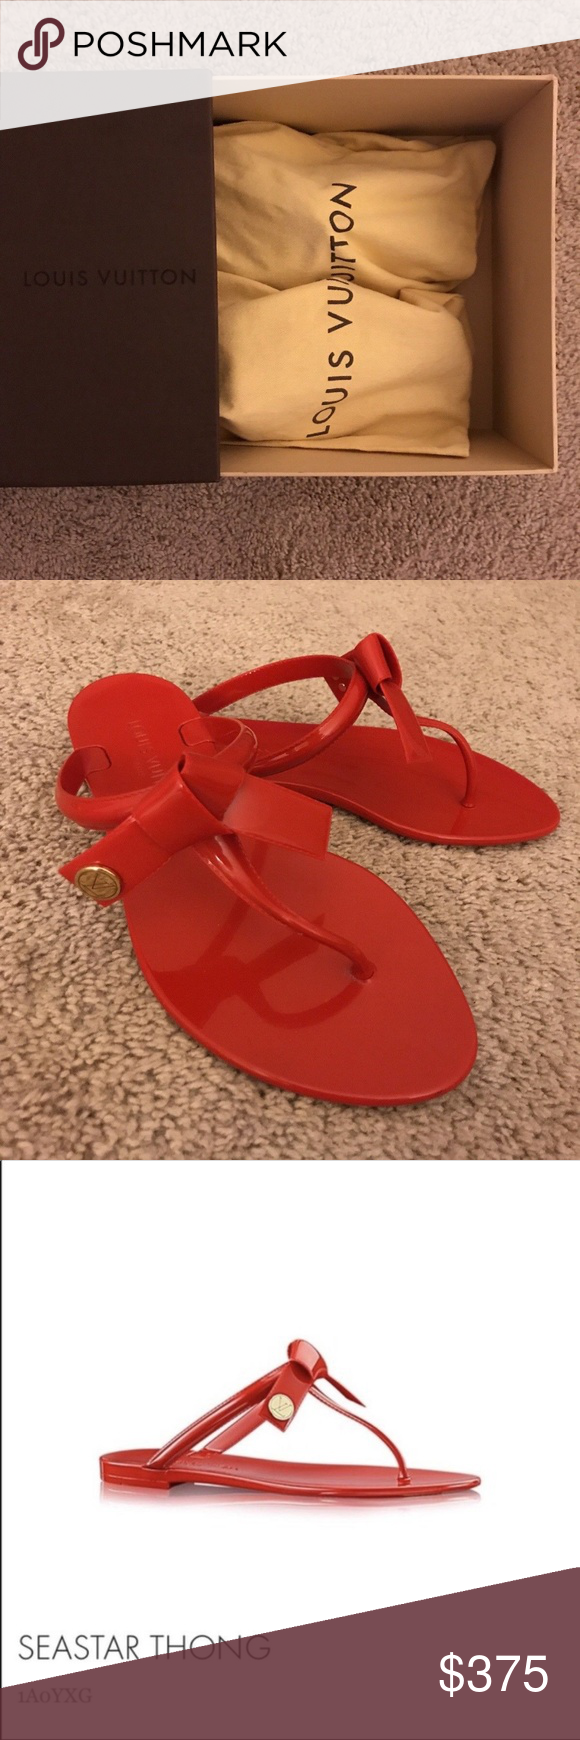 df88f9f9f724 Louis Vuitton Red Seastar thong sandal 37 Worn once- super comfortable jelly  sandal